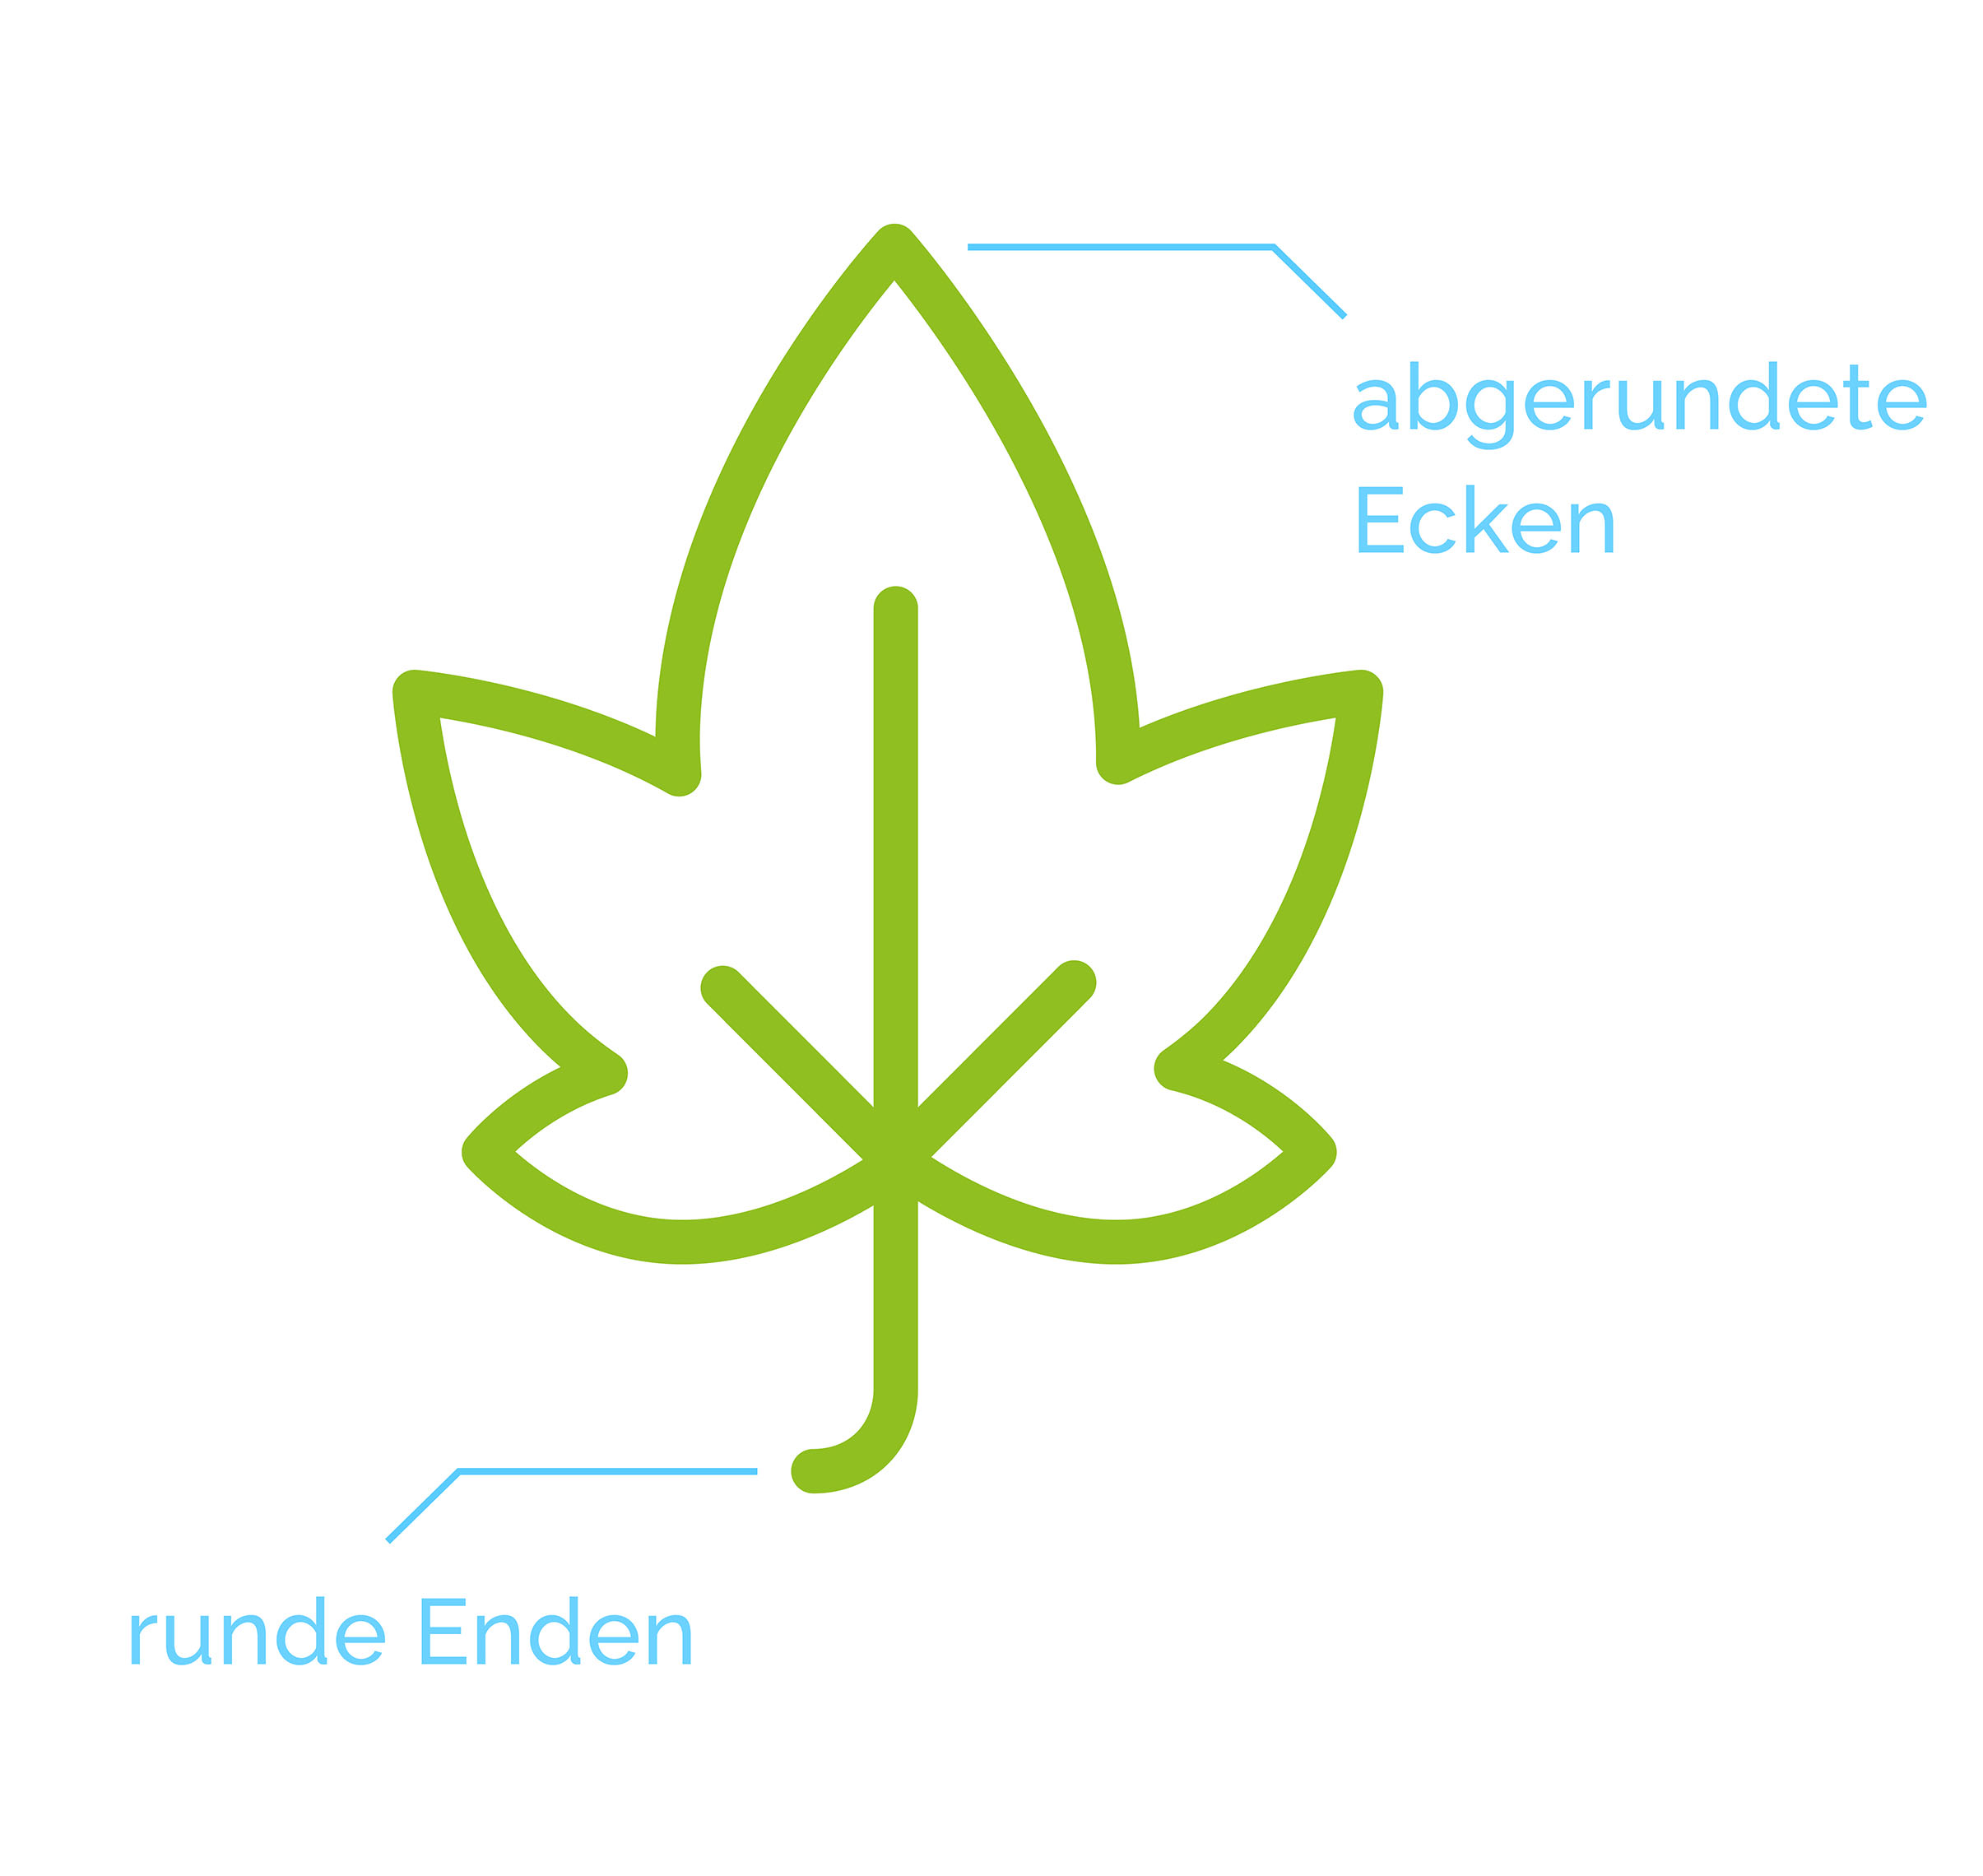 Case-Study-FriedWald-Material_Icons-Hover-cropped